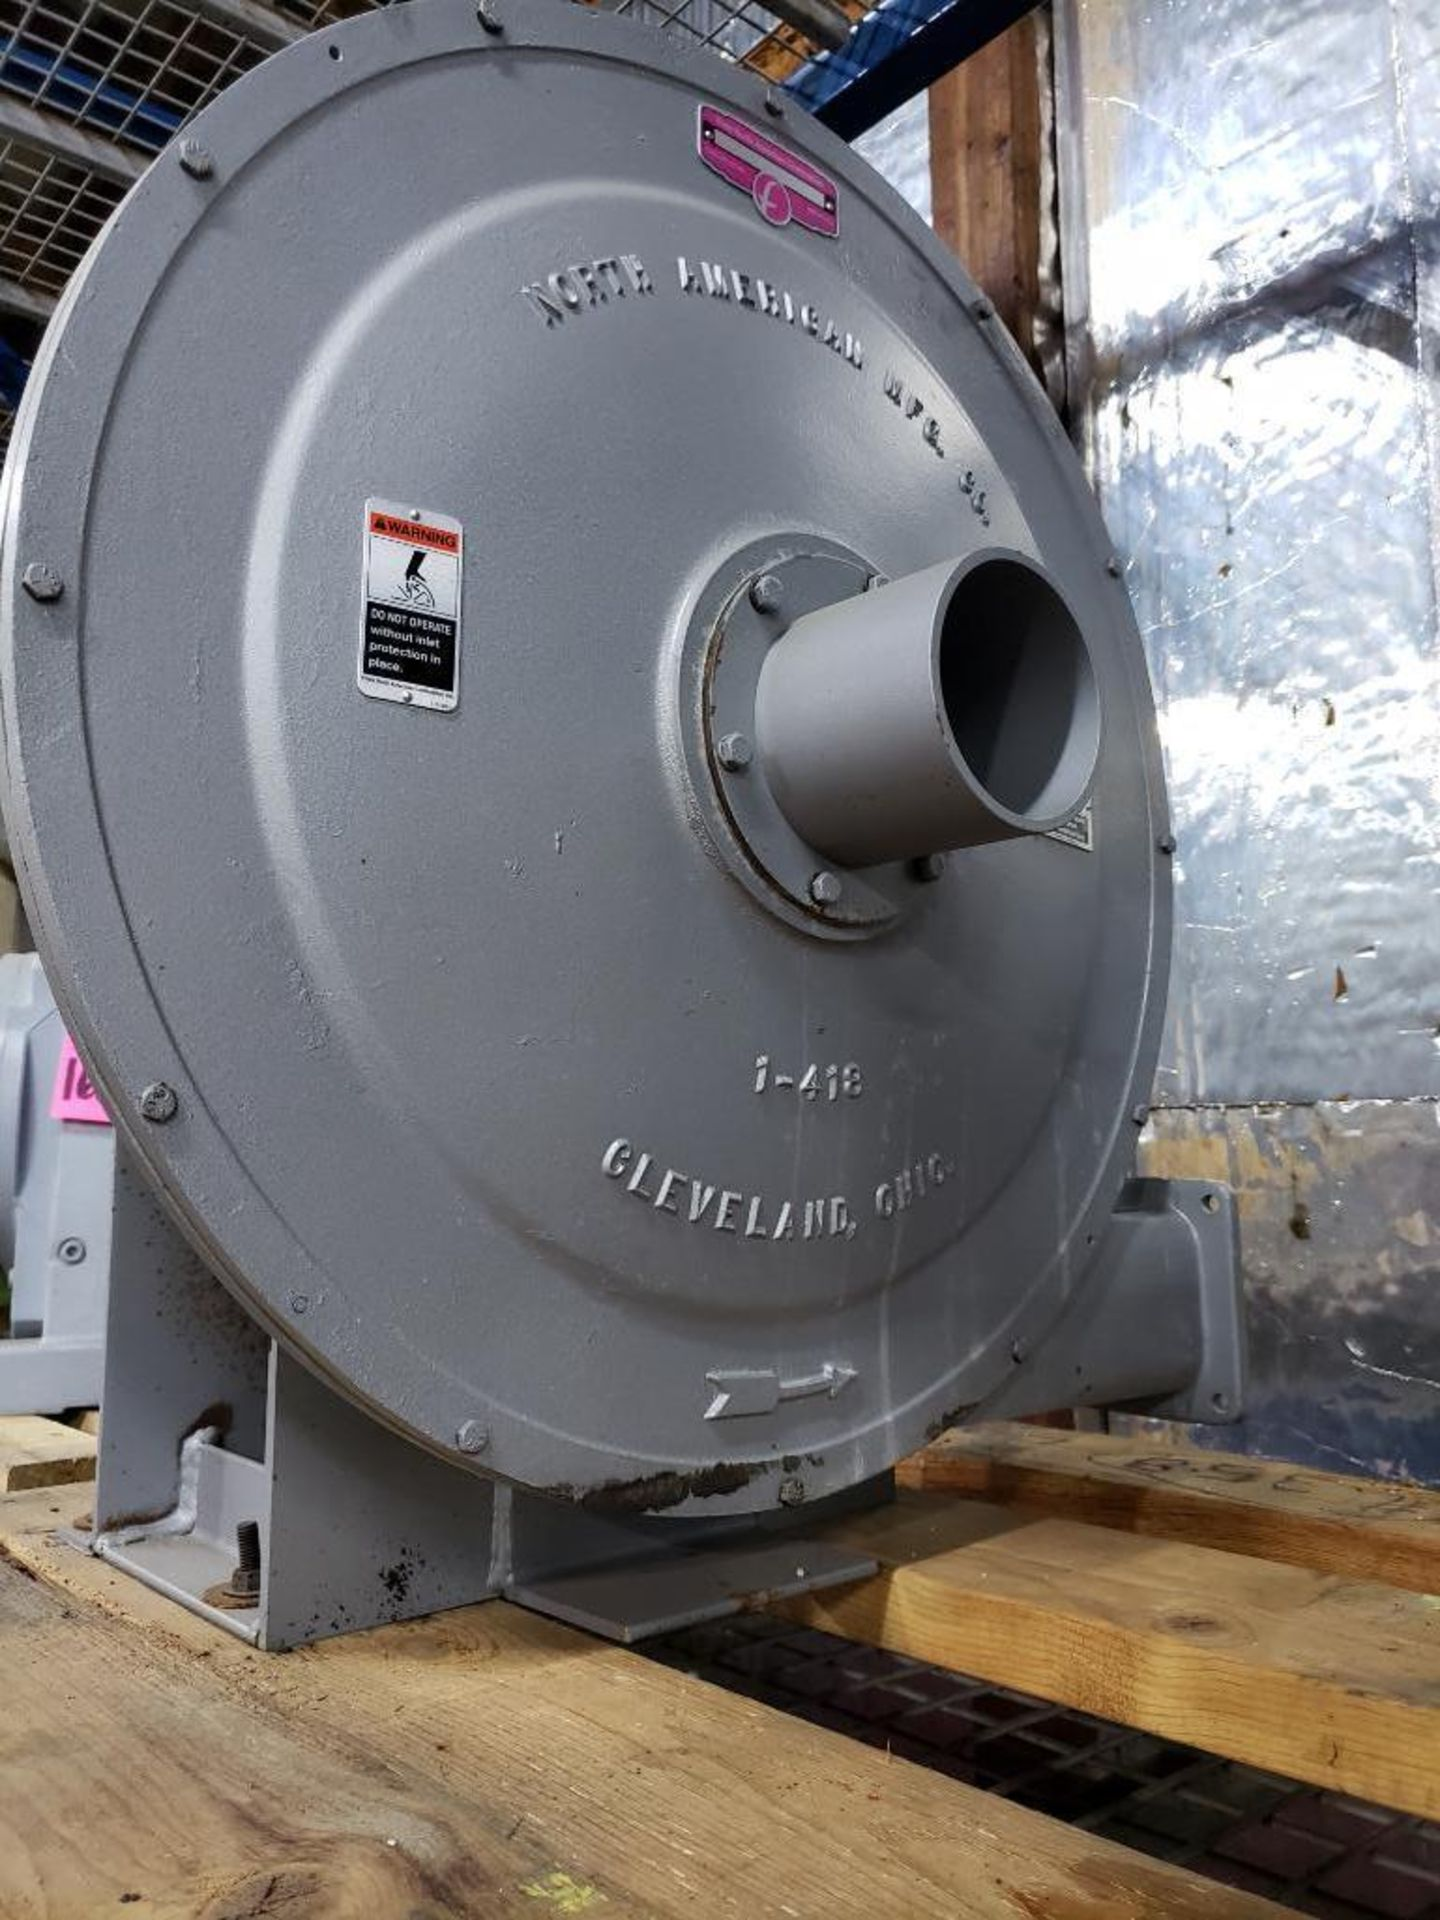 Lot 167 - North American turbo blower 340cfm. Appears new old stock.